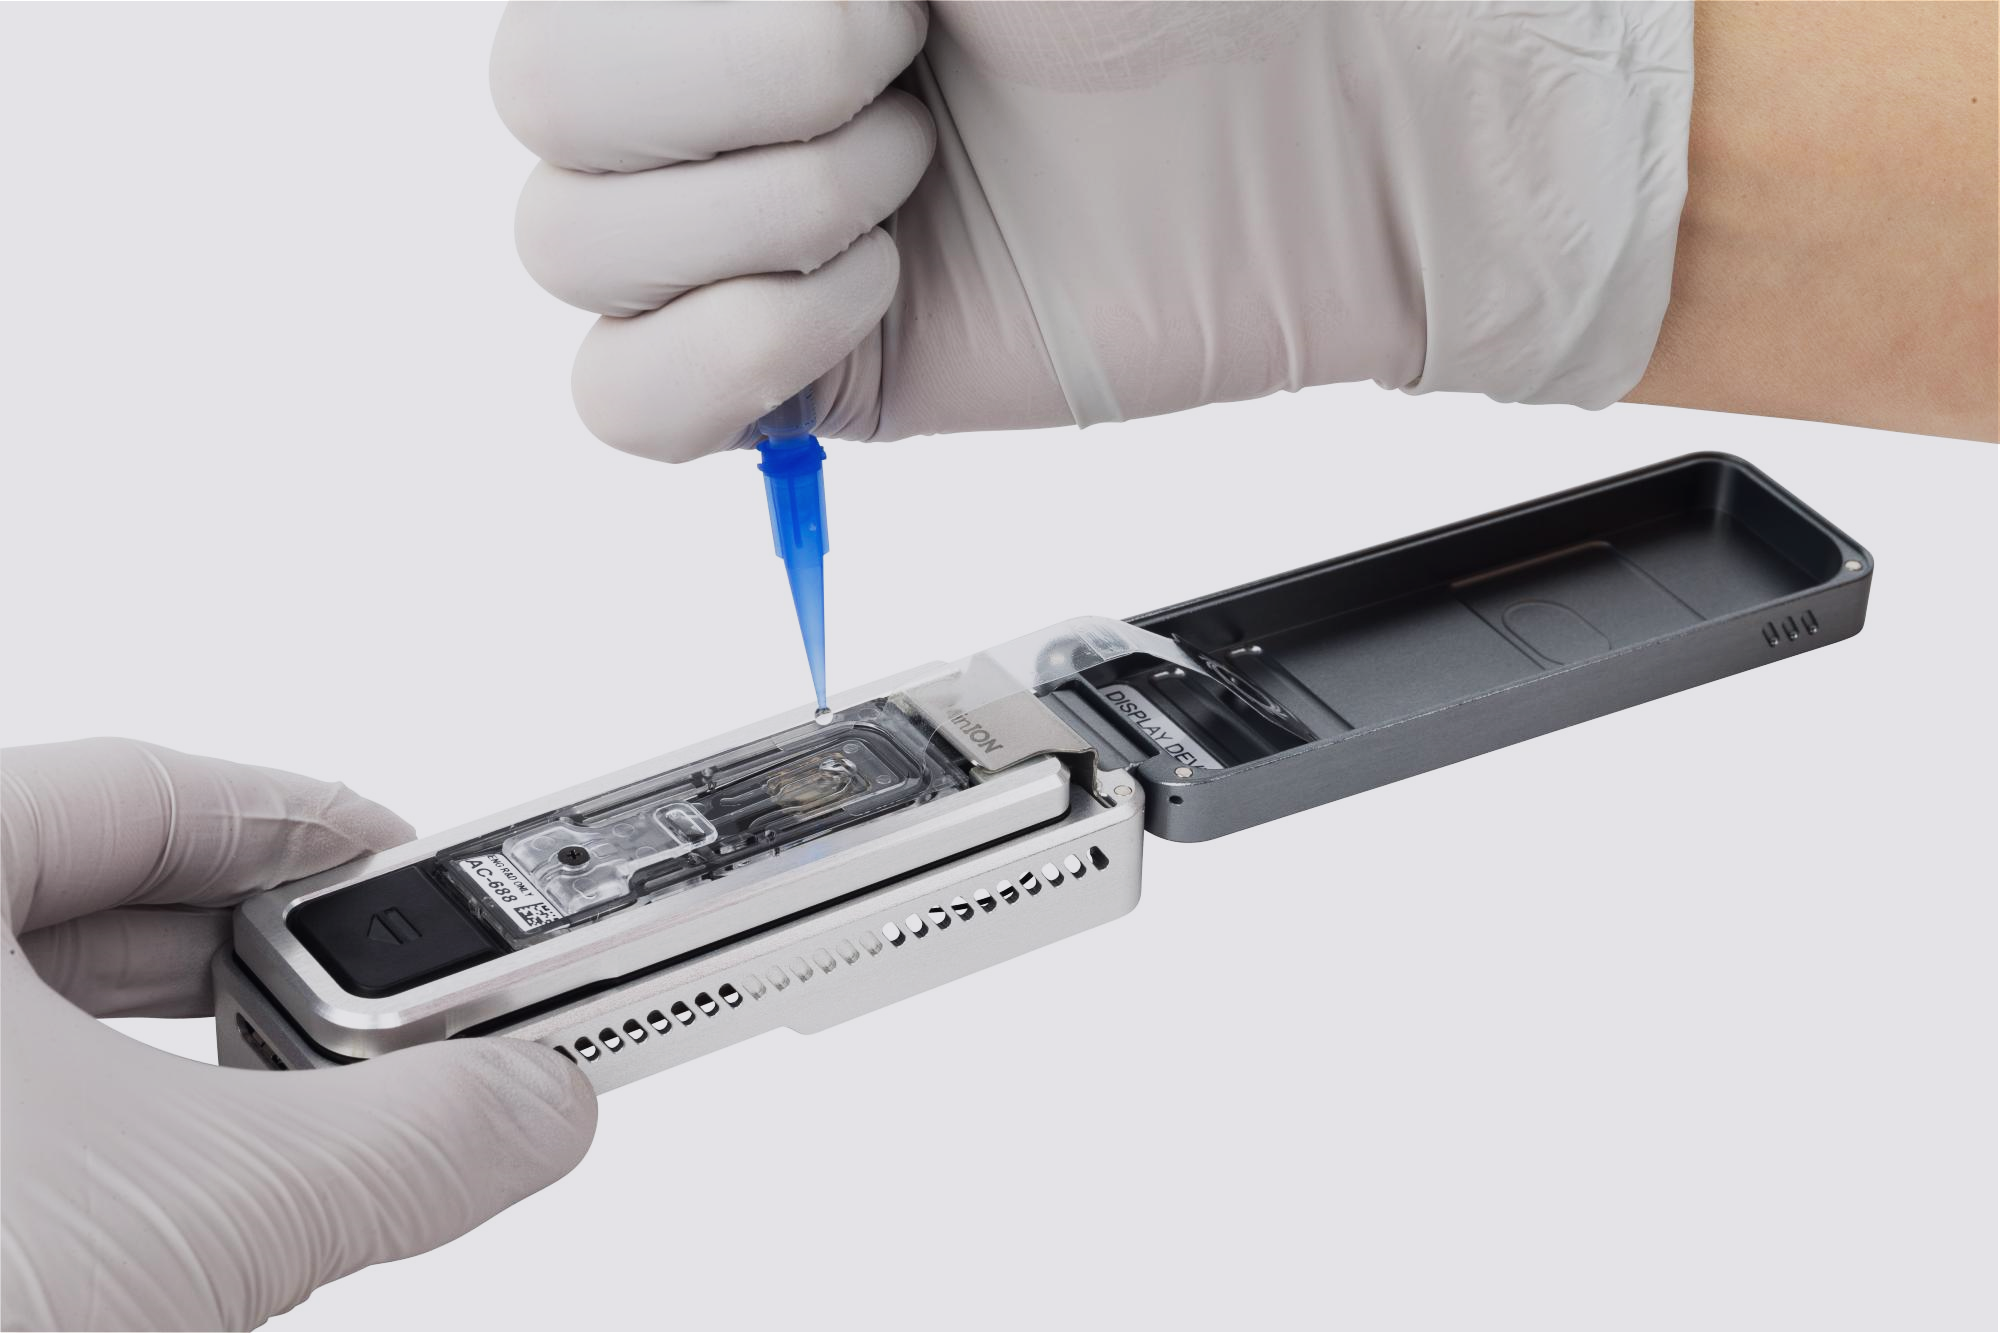 This DNA Sequencer Costs Less Than an iPhone. Conclusion: I Need to Learn Bioinformatics.   by Kahlil Corazo   Medium